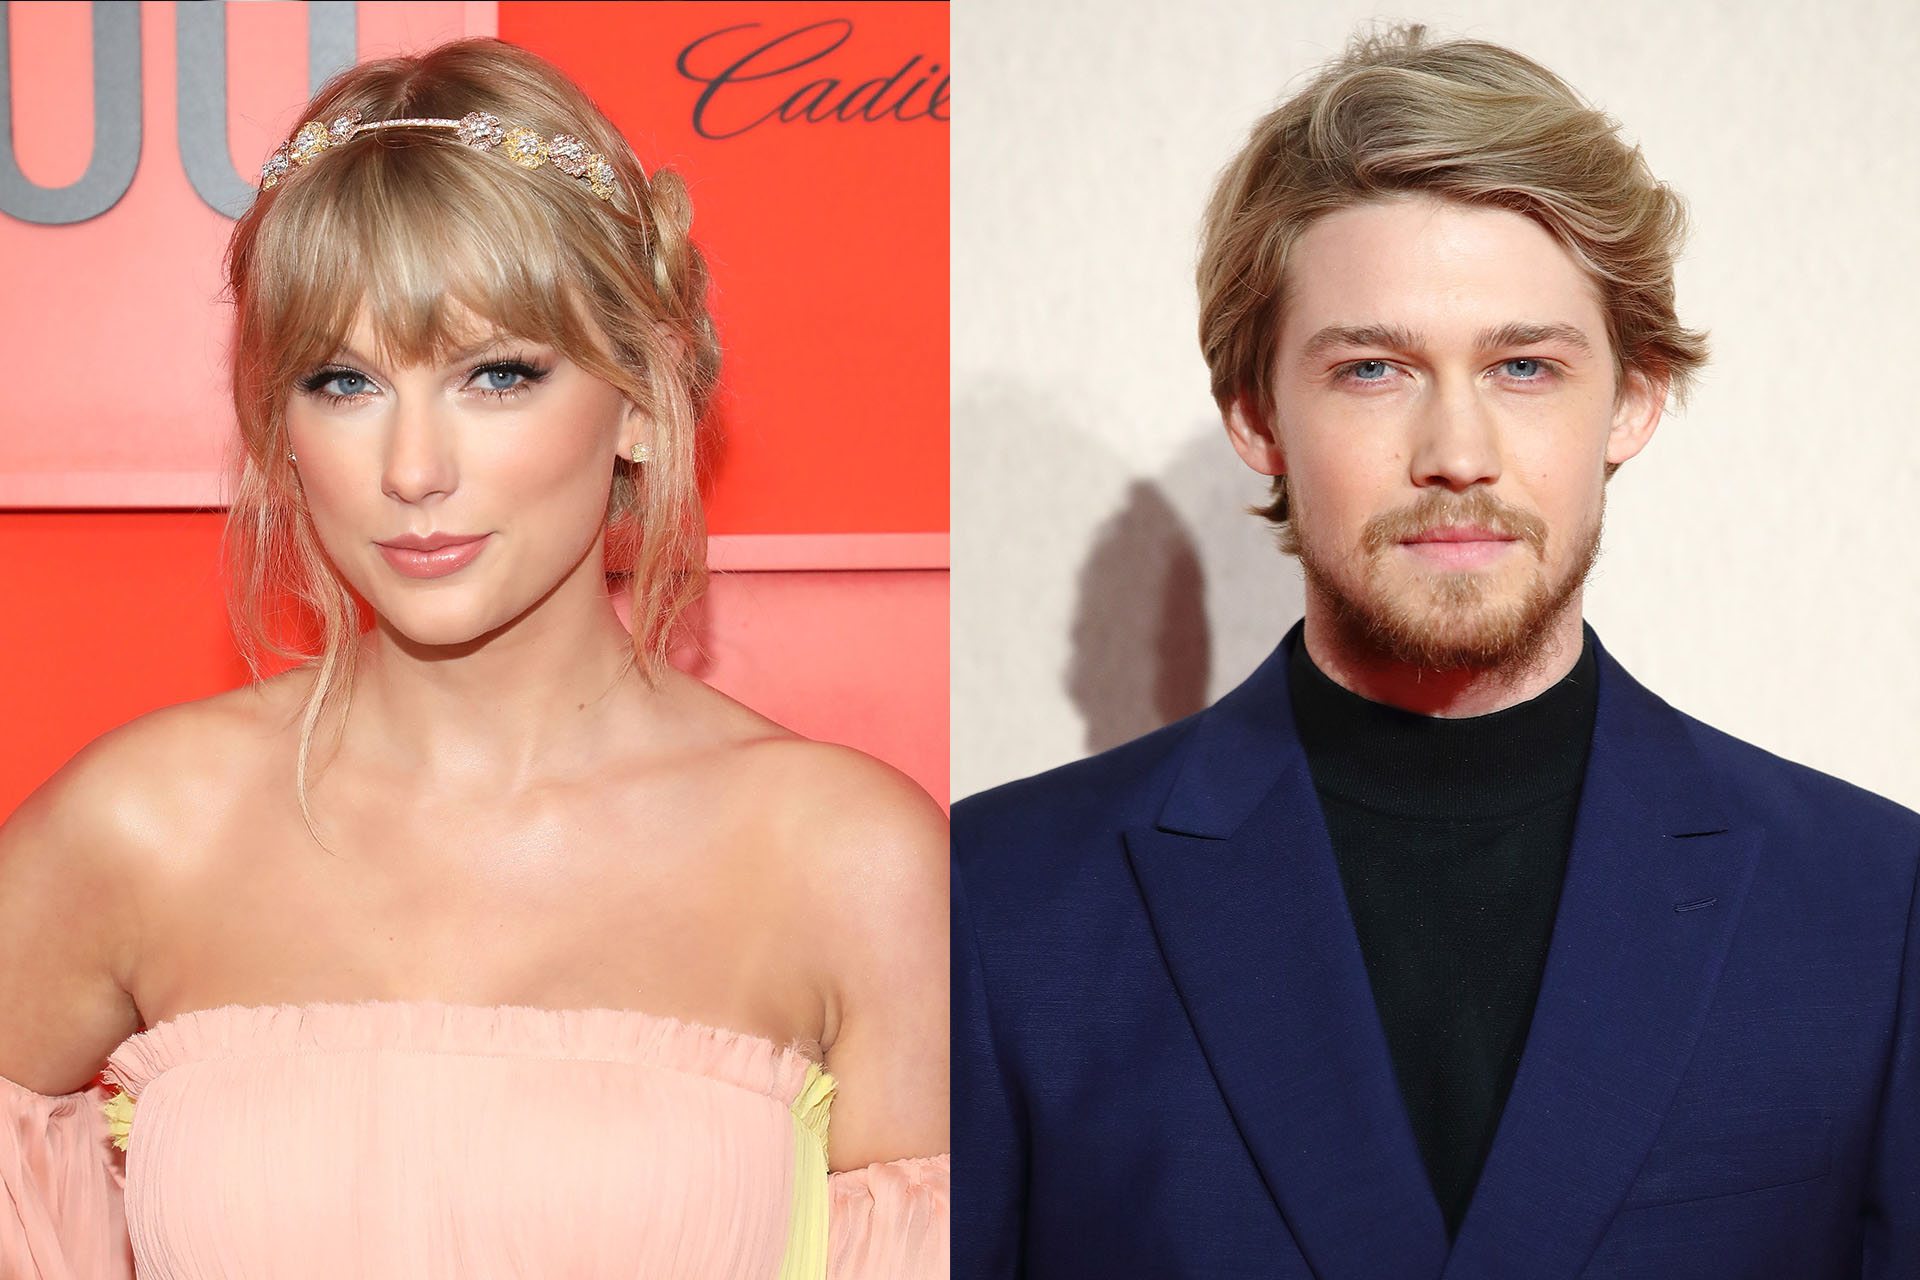 People Now: Did Taylor Swift's Boyfriend Joe Alwyn Co-Write Songs for New Album? Here's Why Fans Think So - Watch the Full Episode